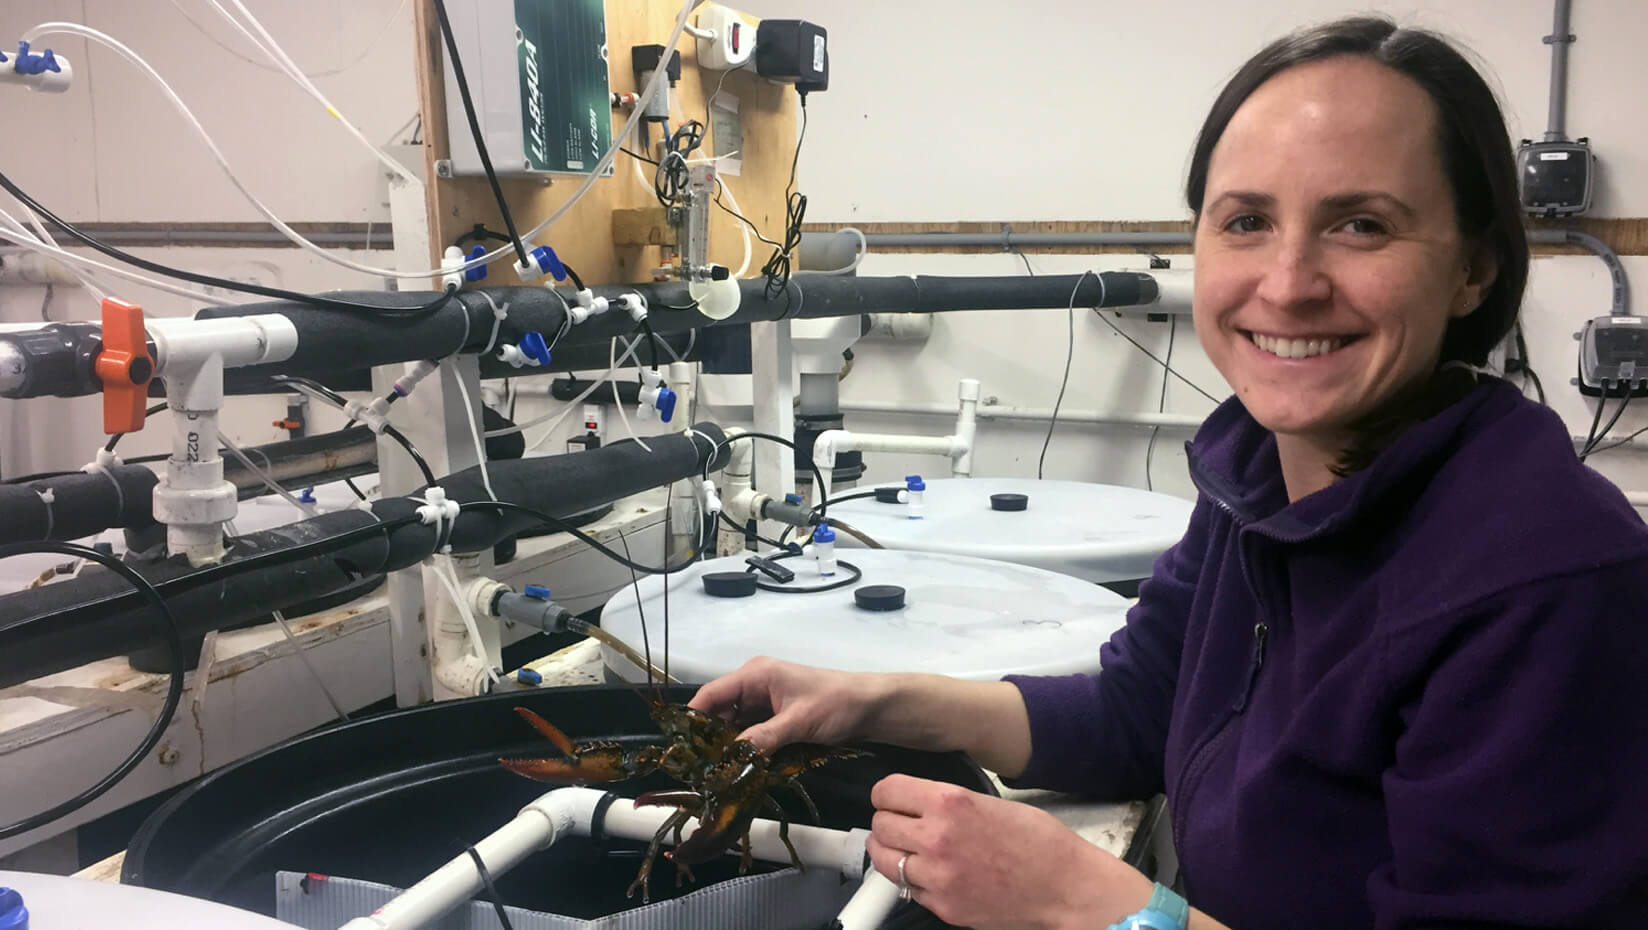 Lobster in a lab